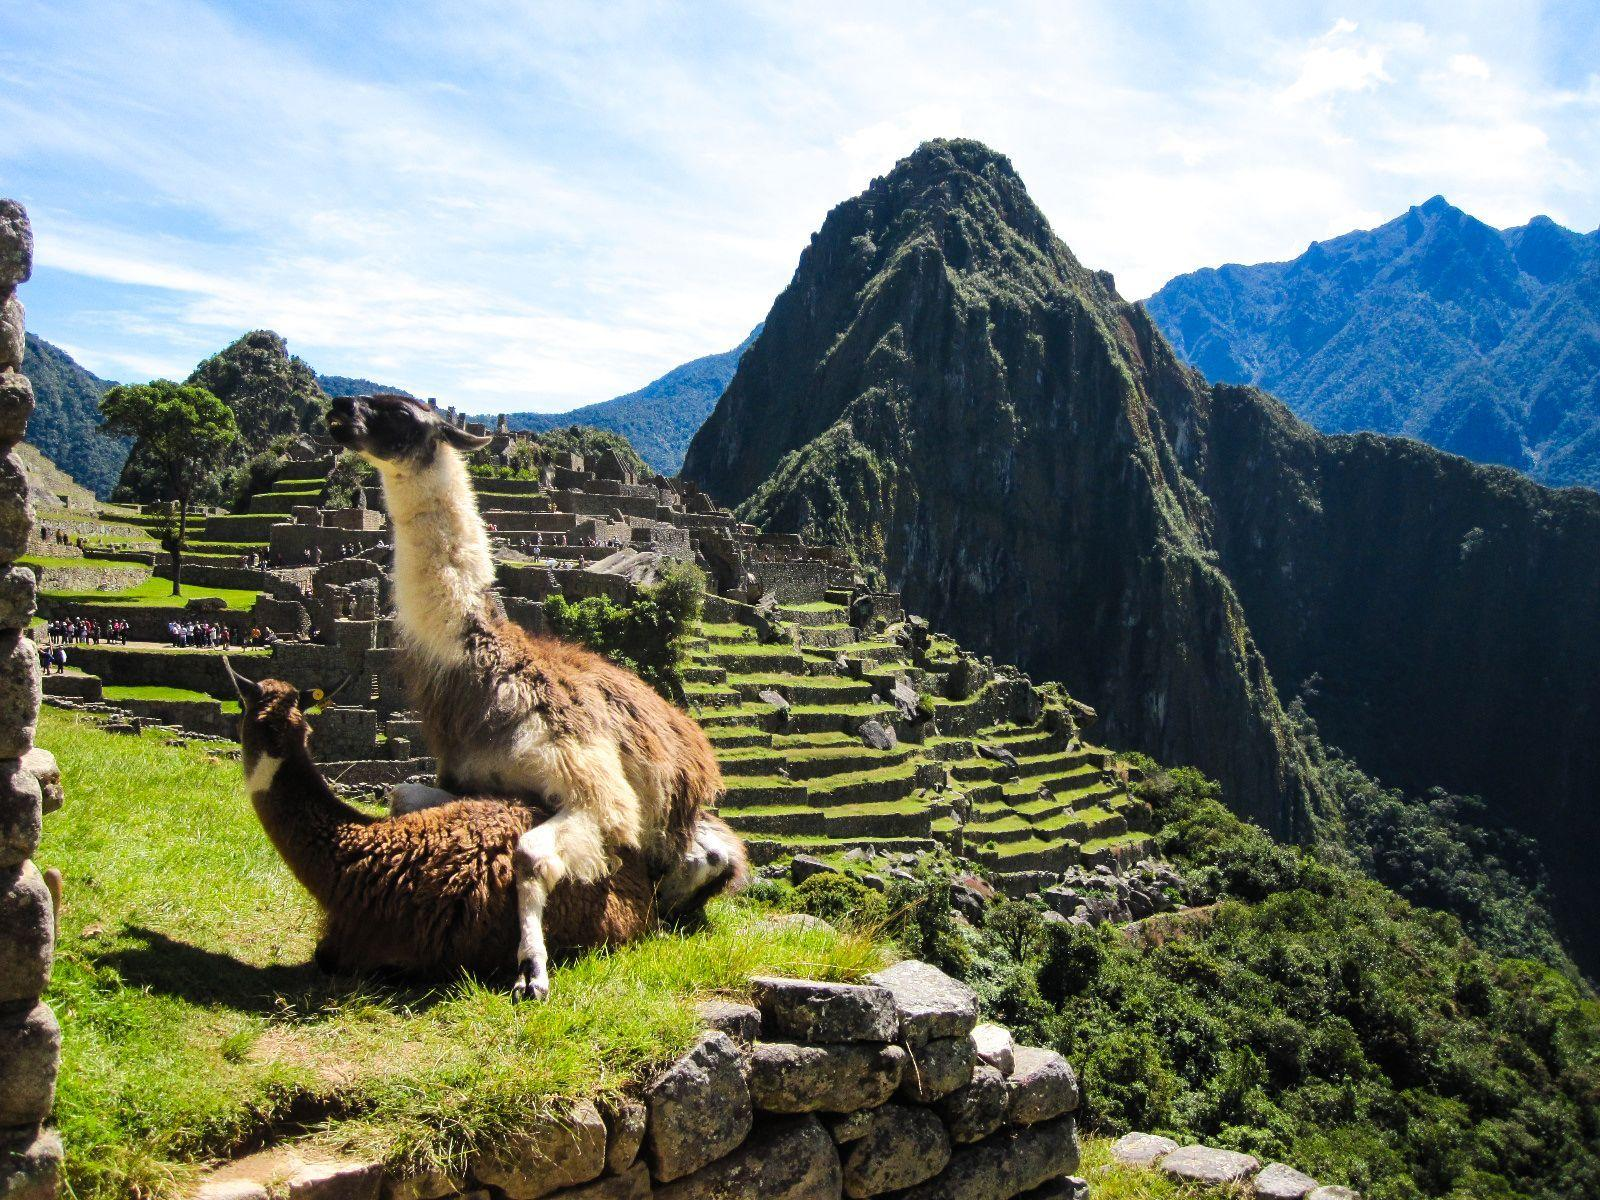 I was browsing the web for Machu Picchu wallpapers when suddenly ...